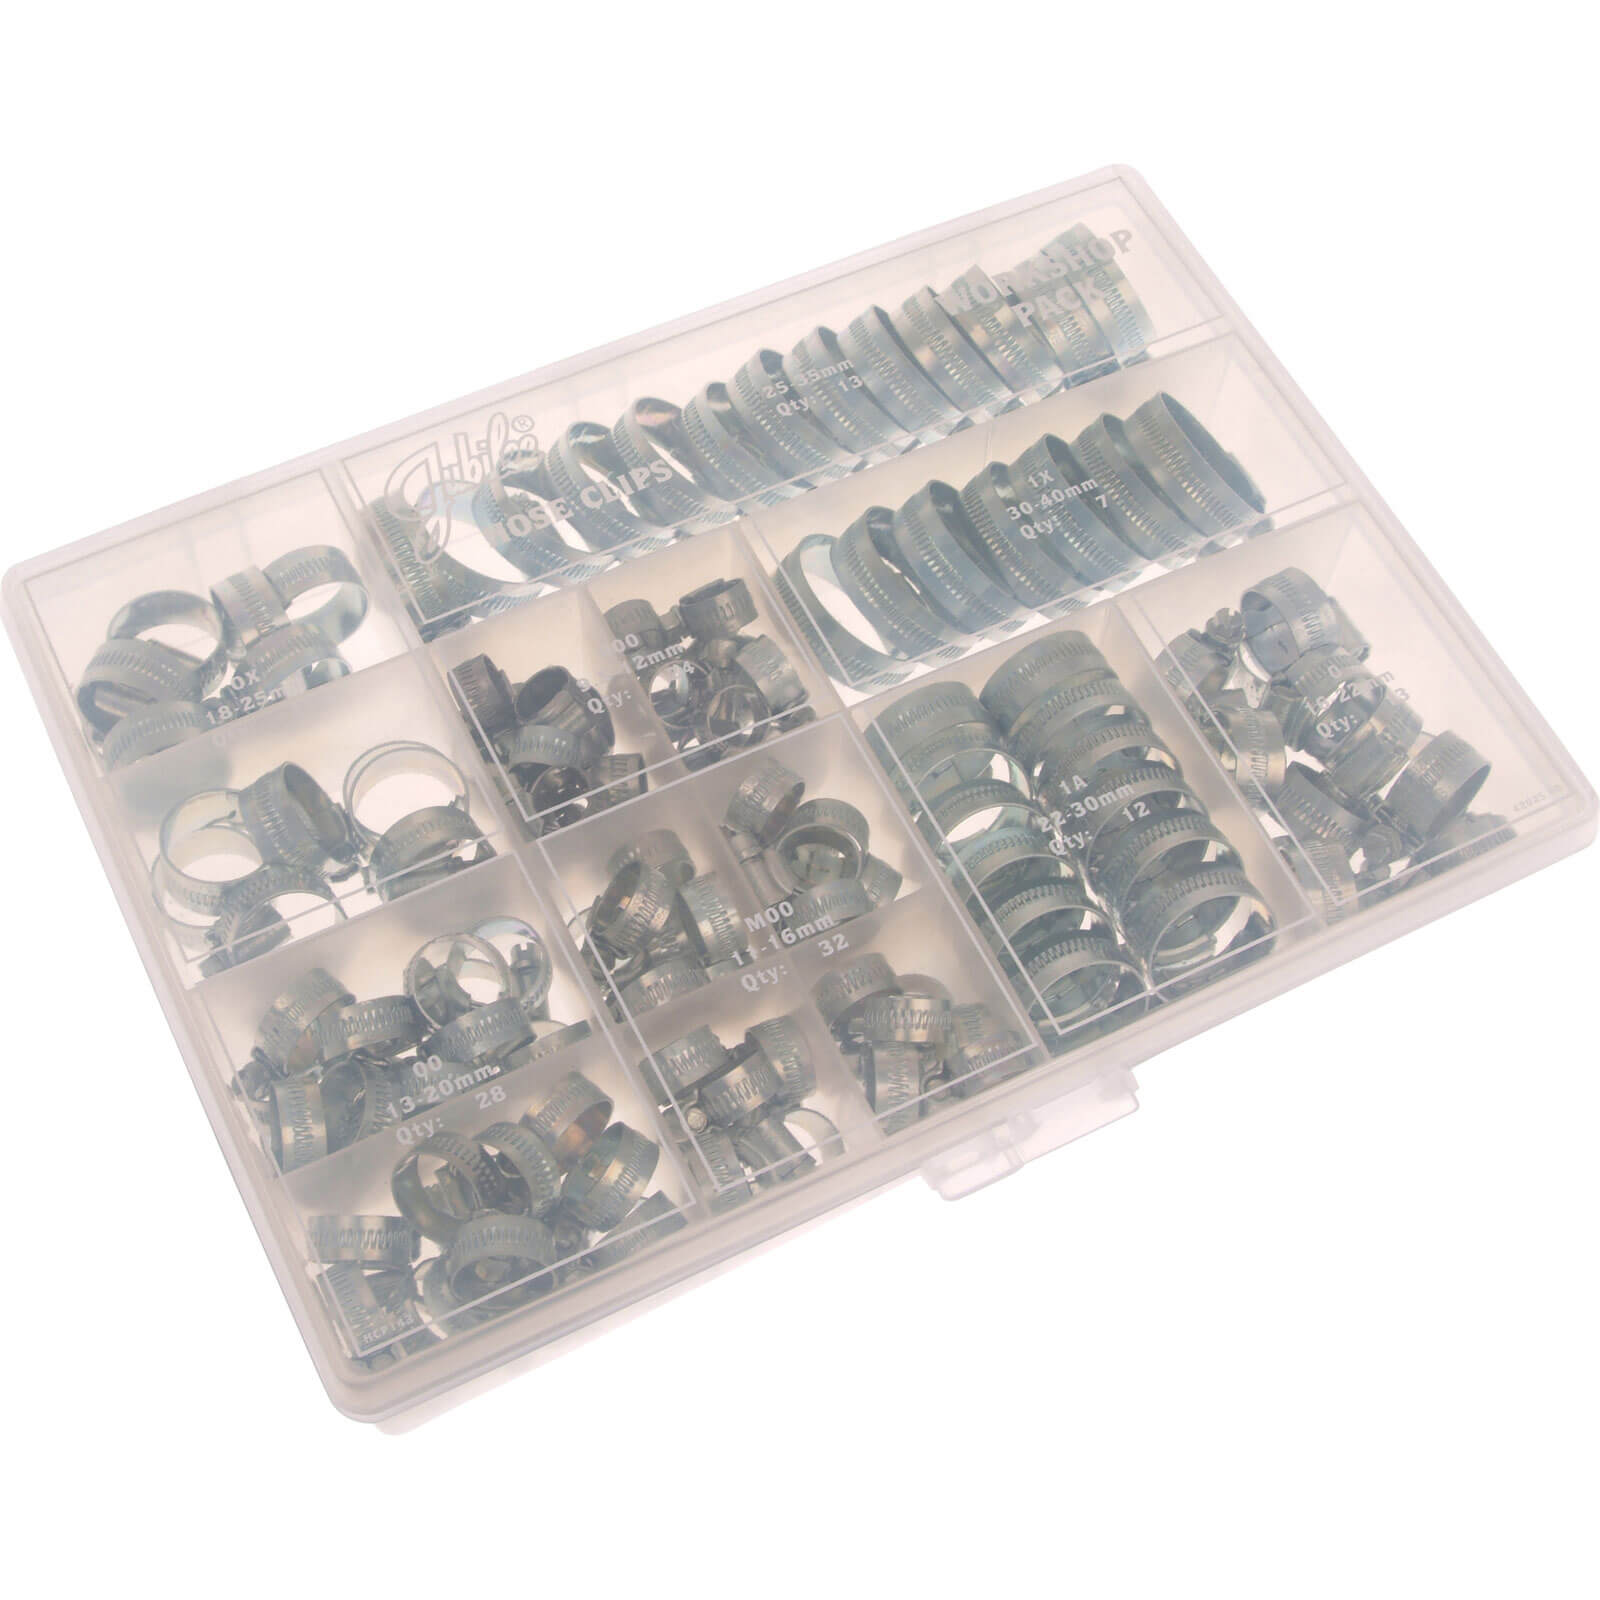 Jubilee Zinc Plated Hose Clips Assorted Sizes Pack of 143